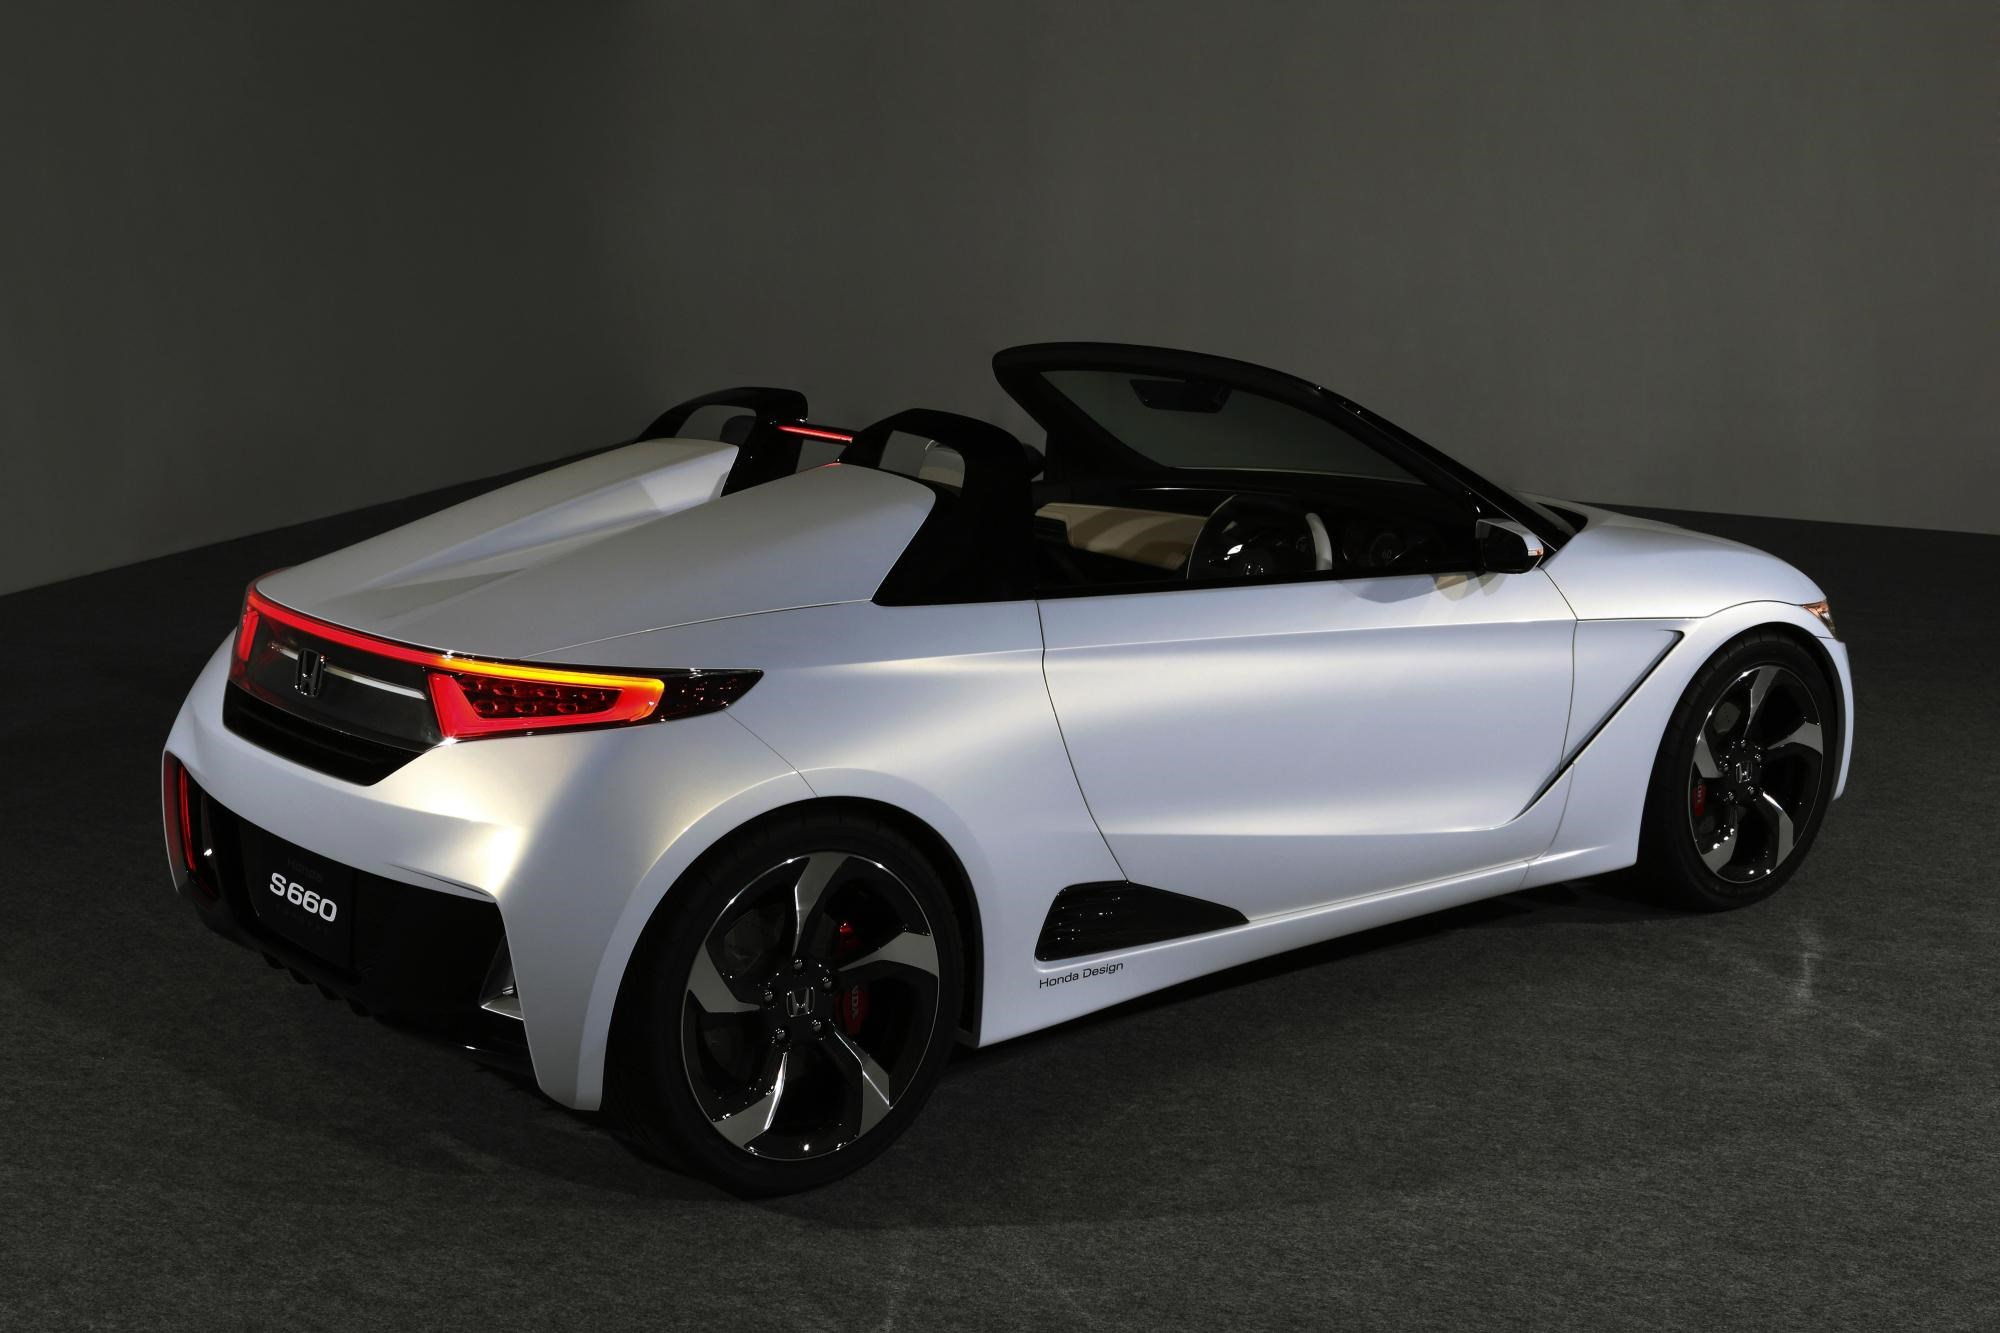 Honda S660 Micro Sports Car Not Coming To Uk By Car Magazine